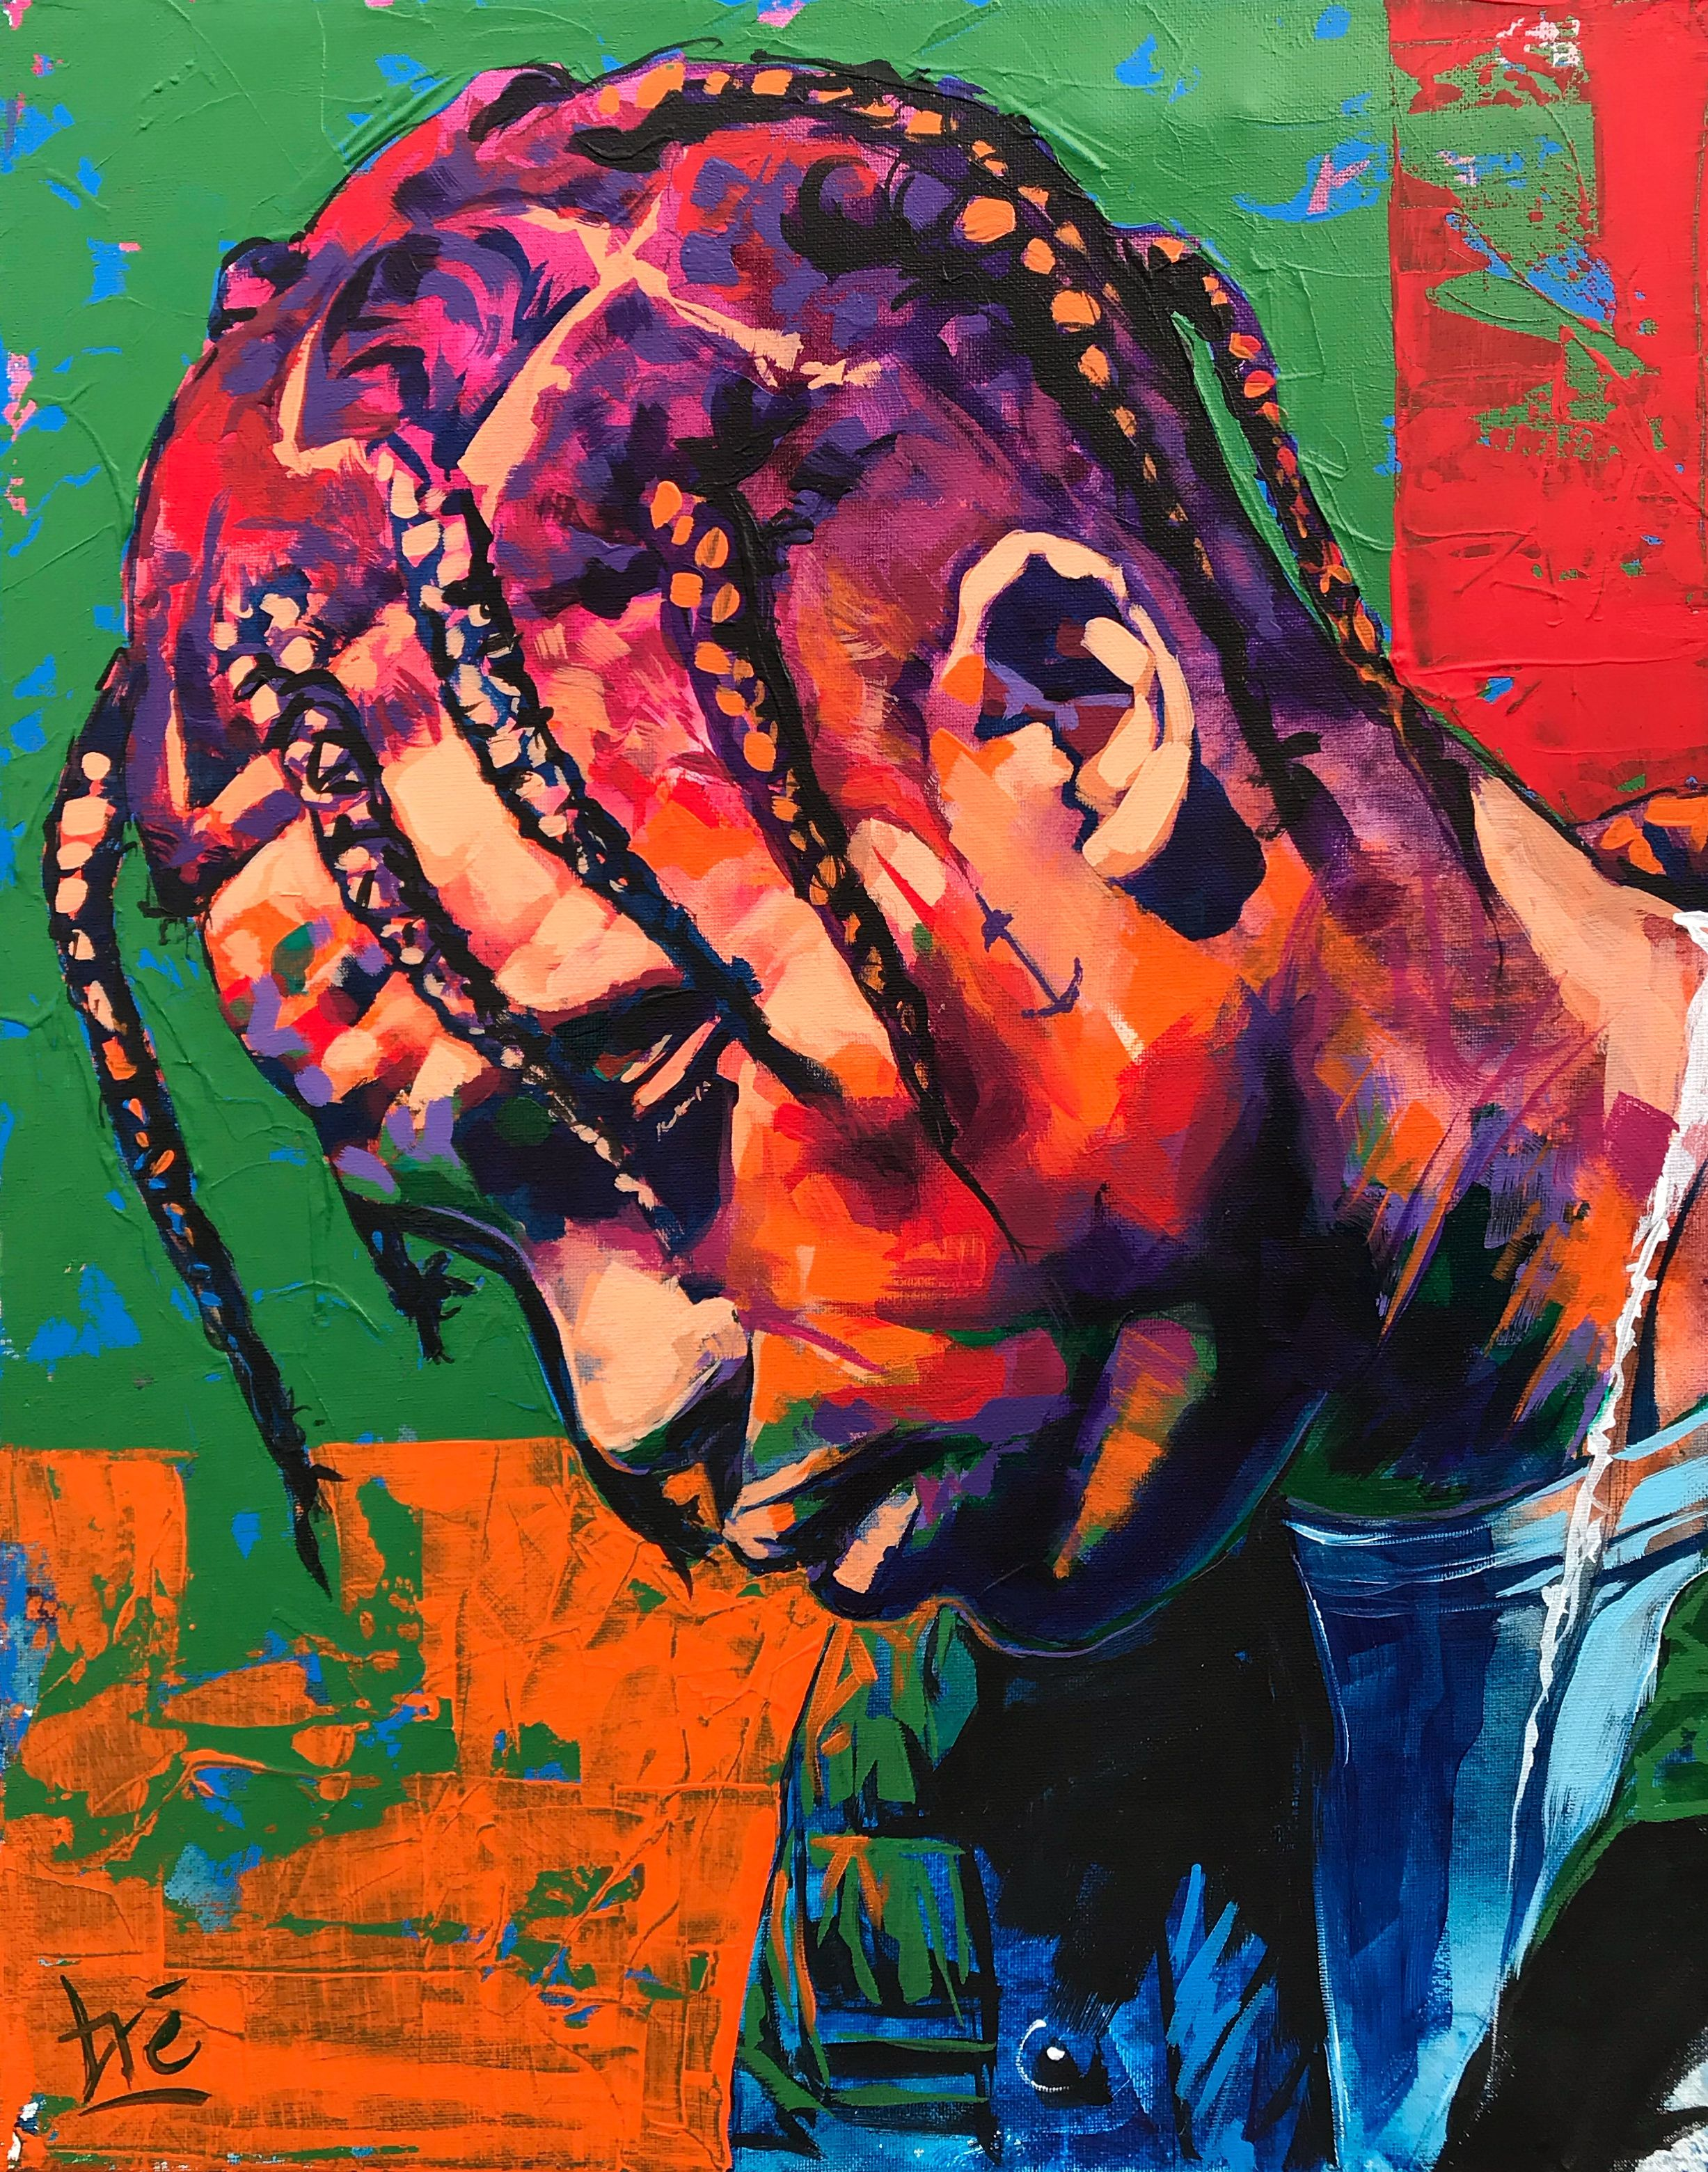 Travis Scott Acrylic Painting Astroworld Done by Tré